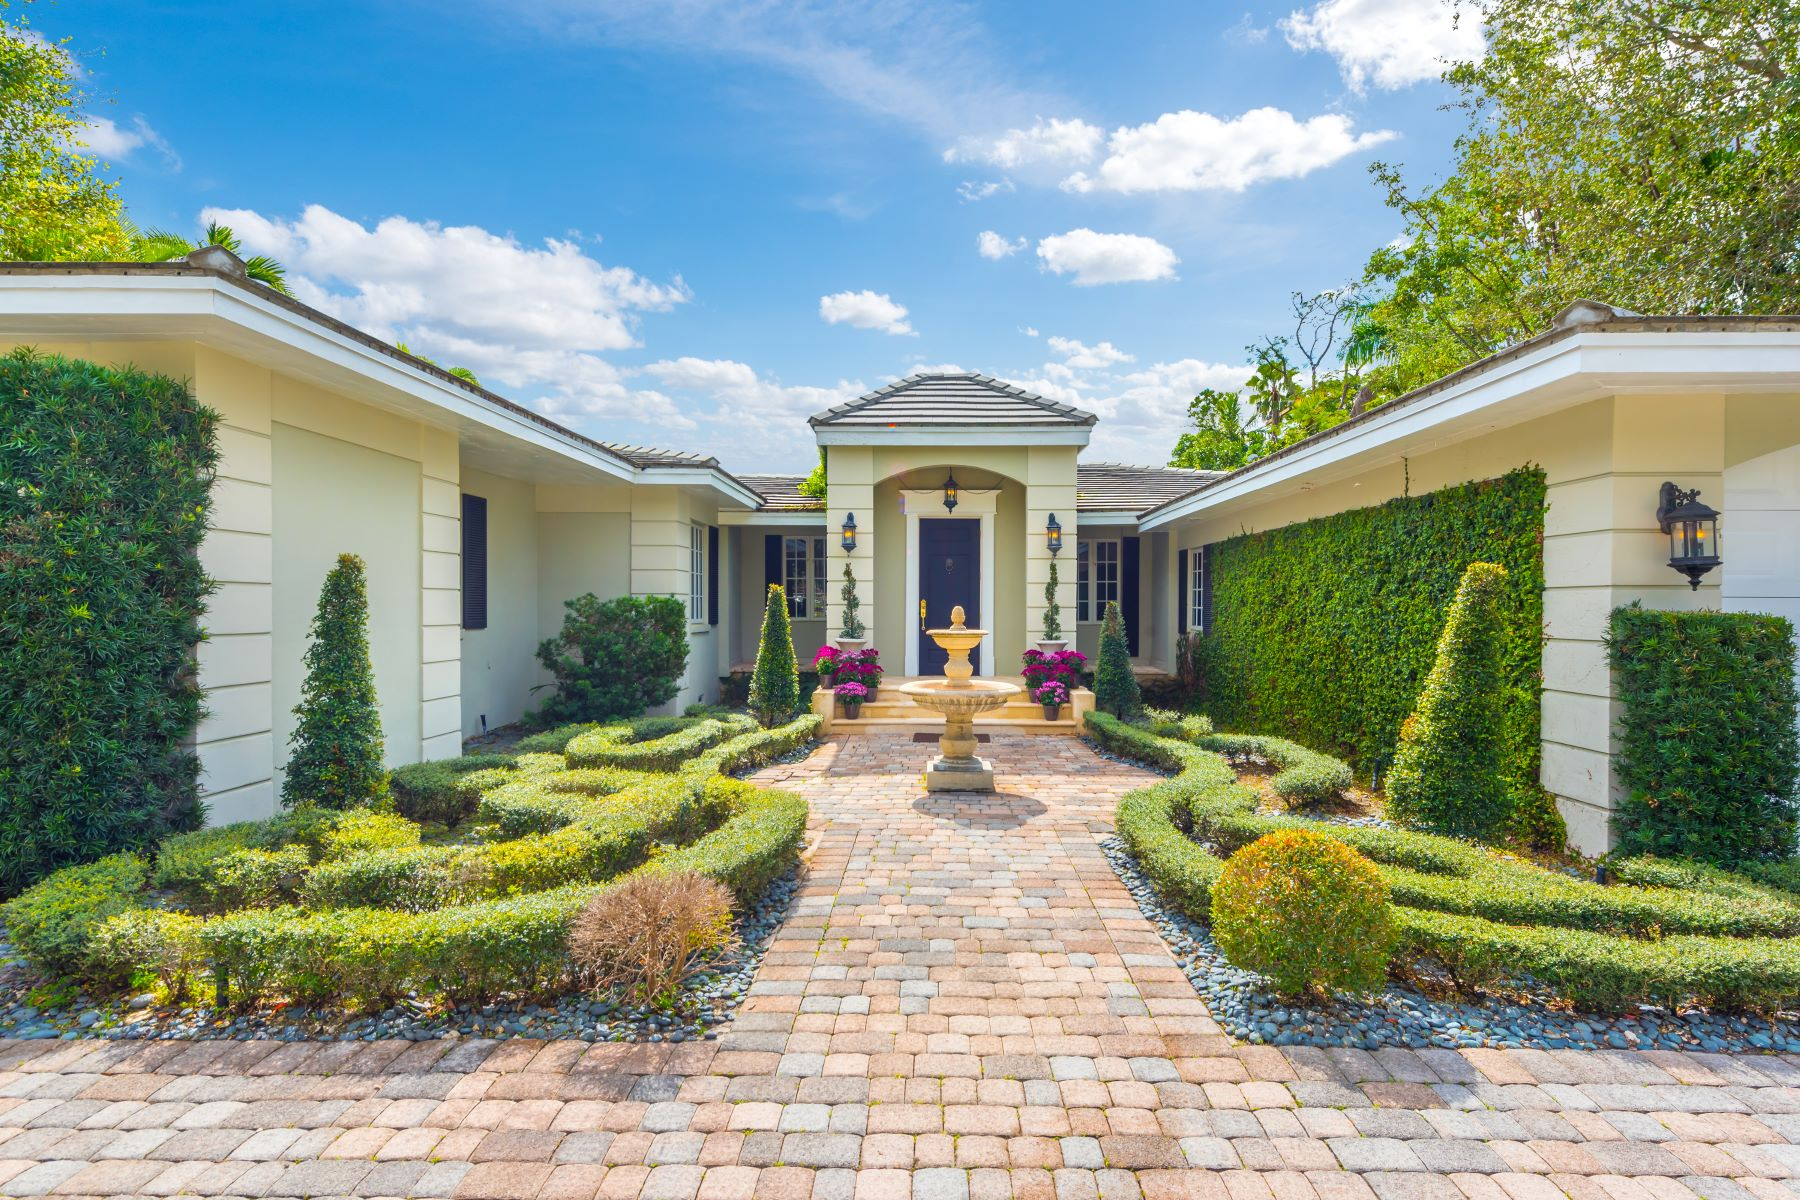 Single Family Home for Sale at 1220 S Greenway Dr Coral Gables, Florida, 33134 United States